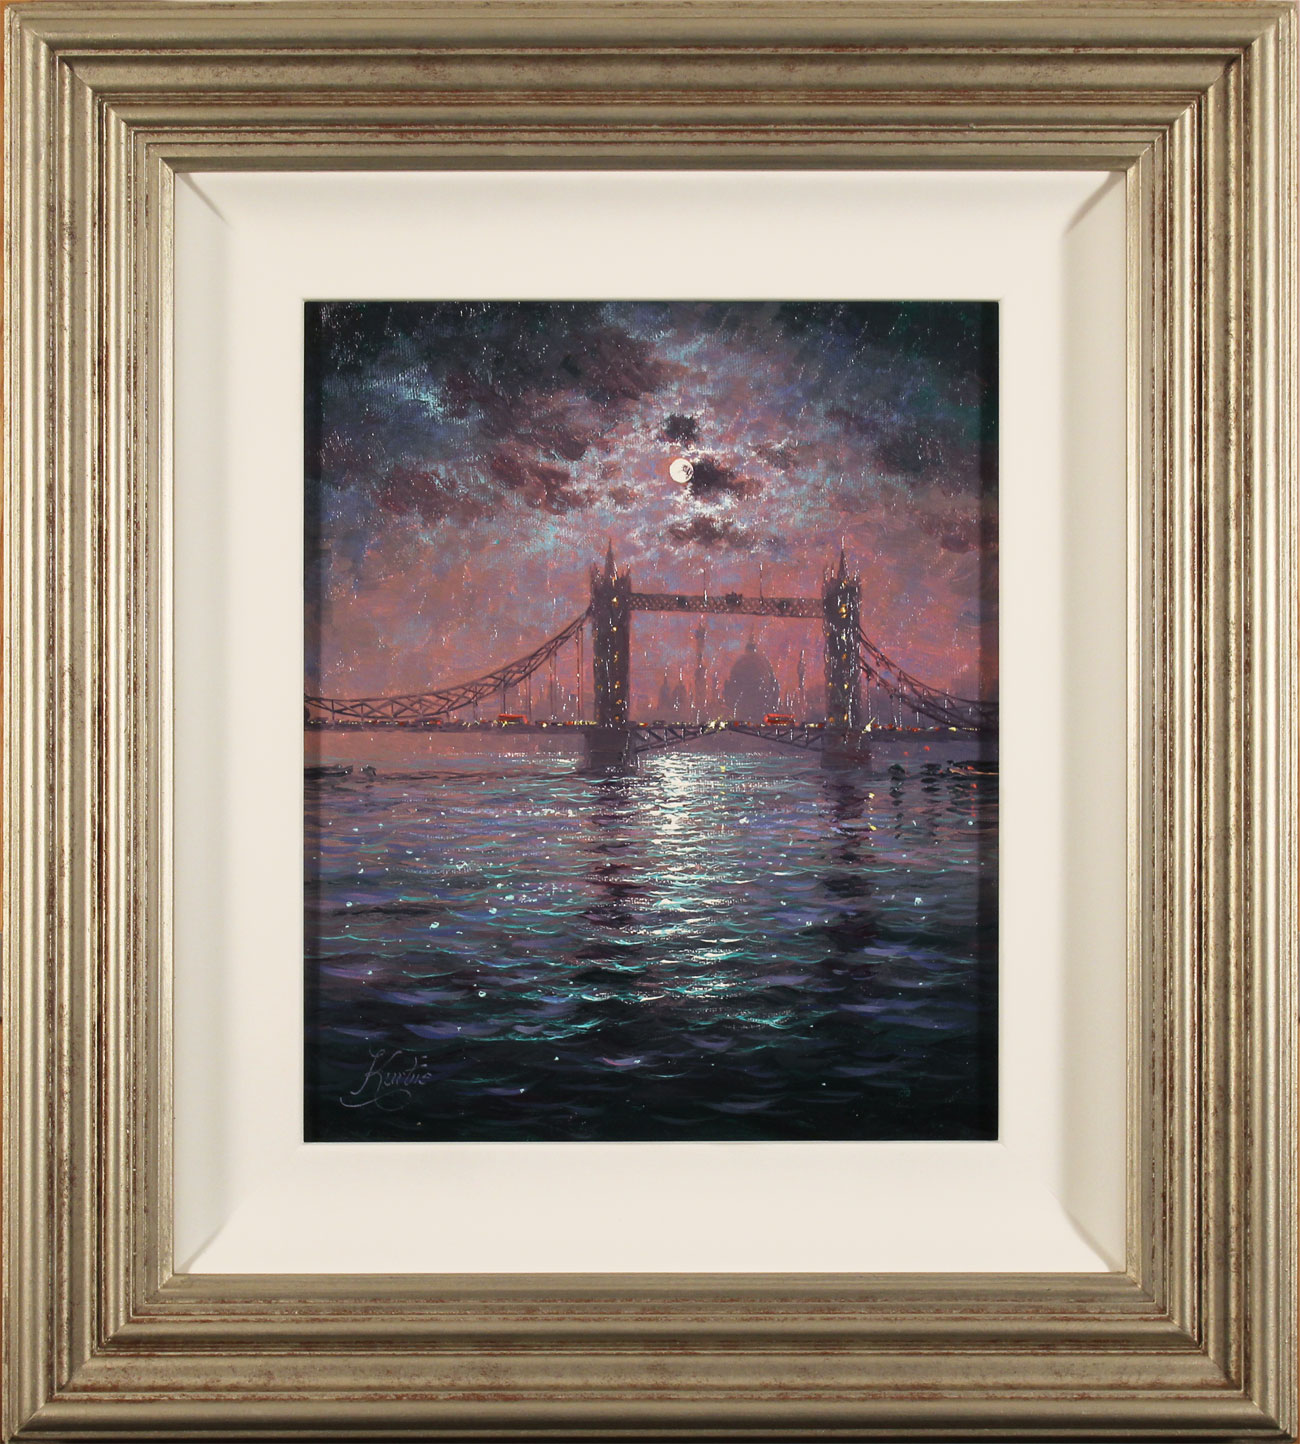 Andrew Grant Kurtis, Original oil painting on canvas, Tower Bridge by Moonlight Click to enlarge